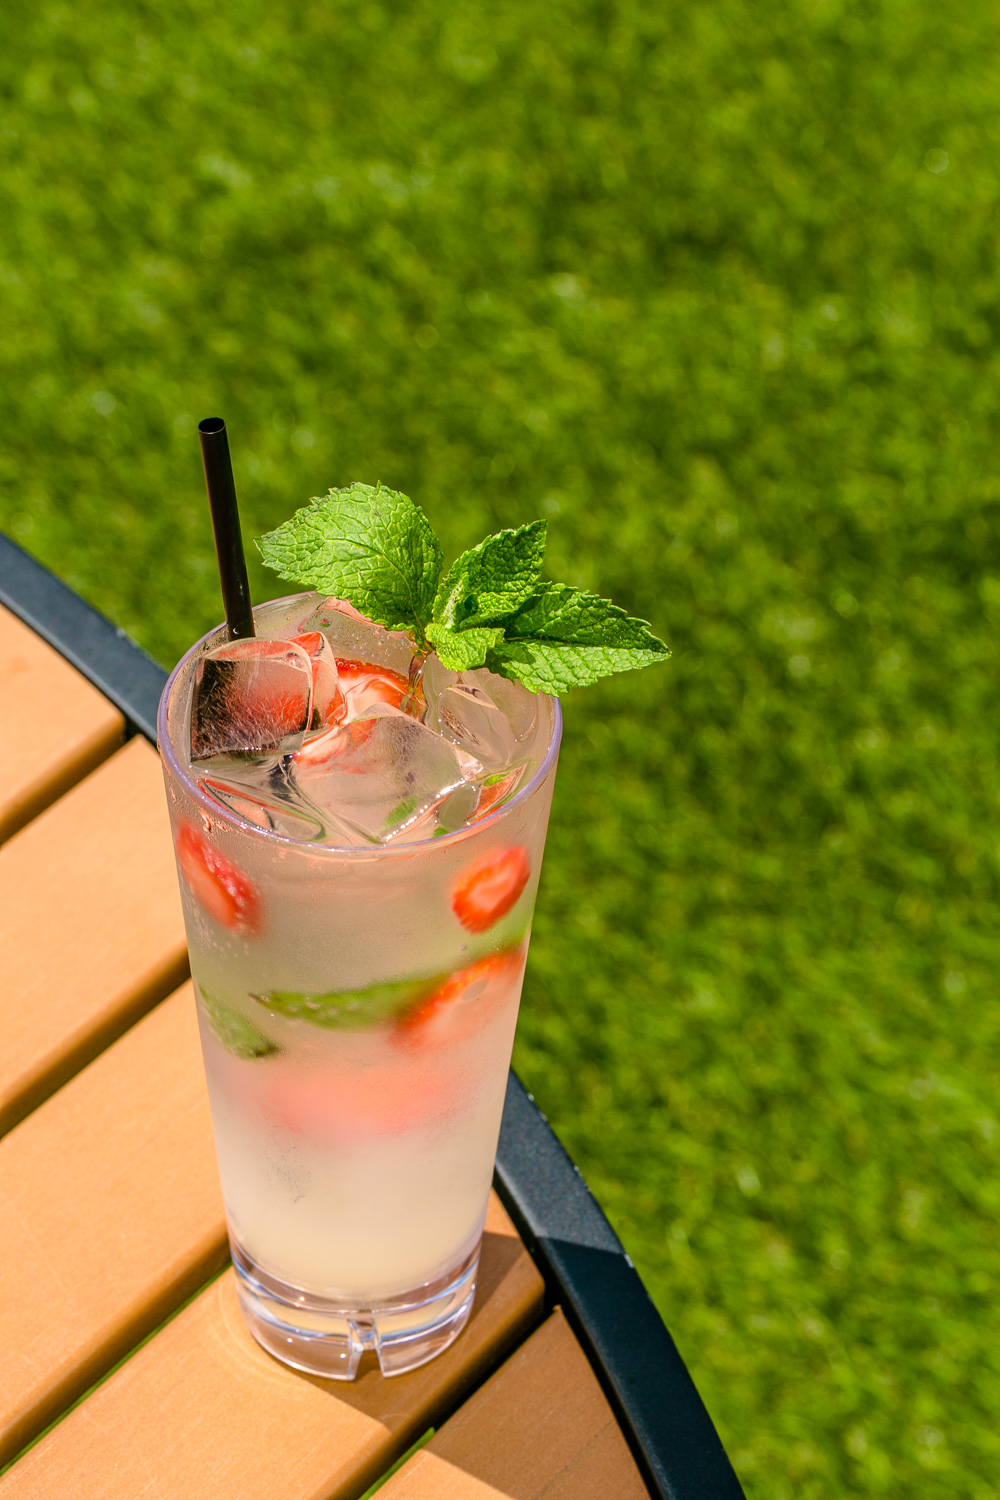 Omni-Hotel-at-The-Battery-Atlanta-Suntrust-Park-Strawberry-Mint-Cocktail-Erik-Meadows